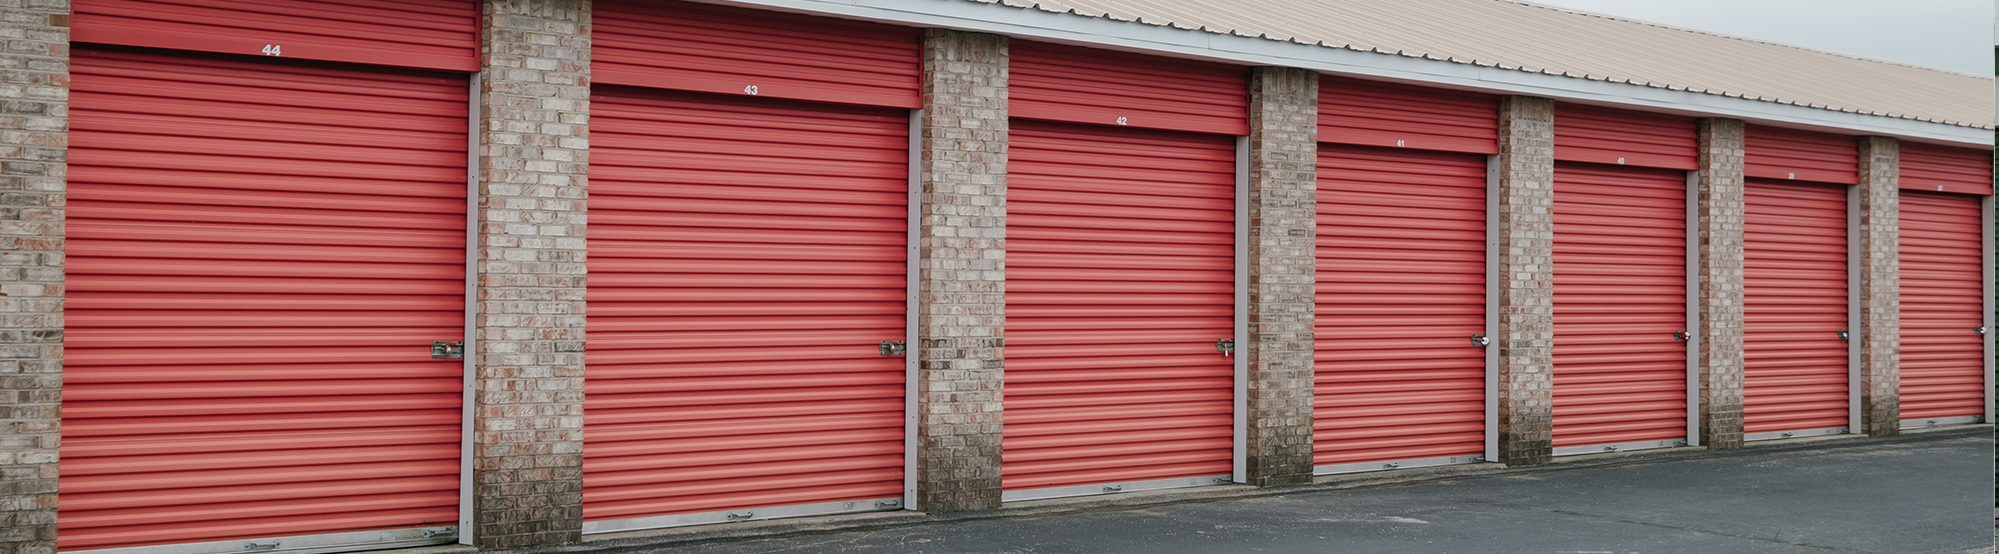 Outdoor Self Storage in Noblesville Indiana